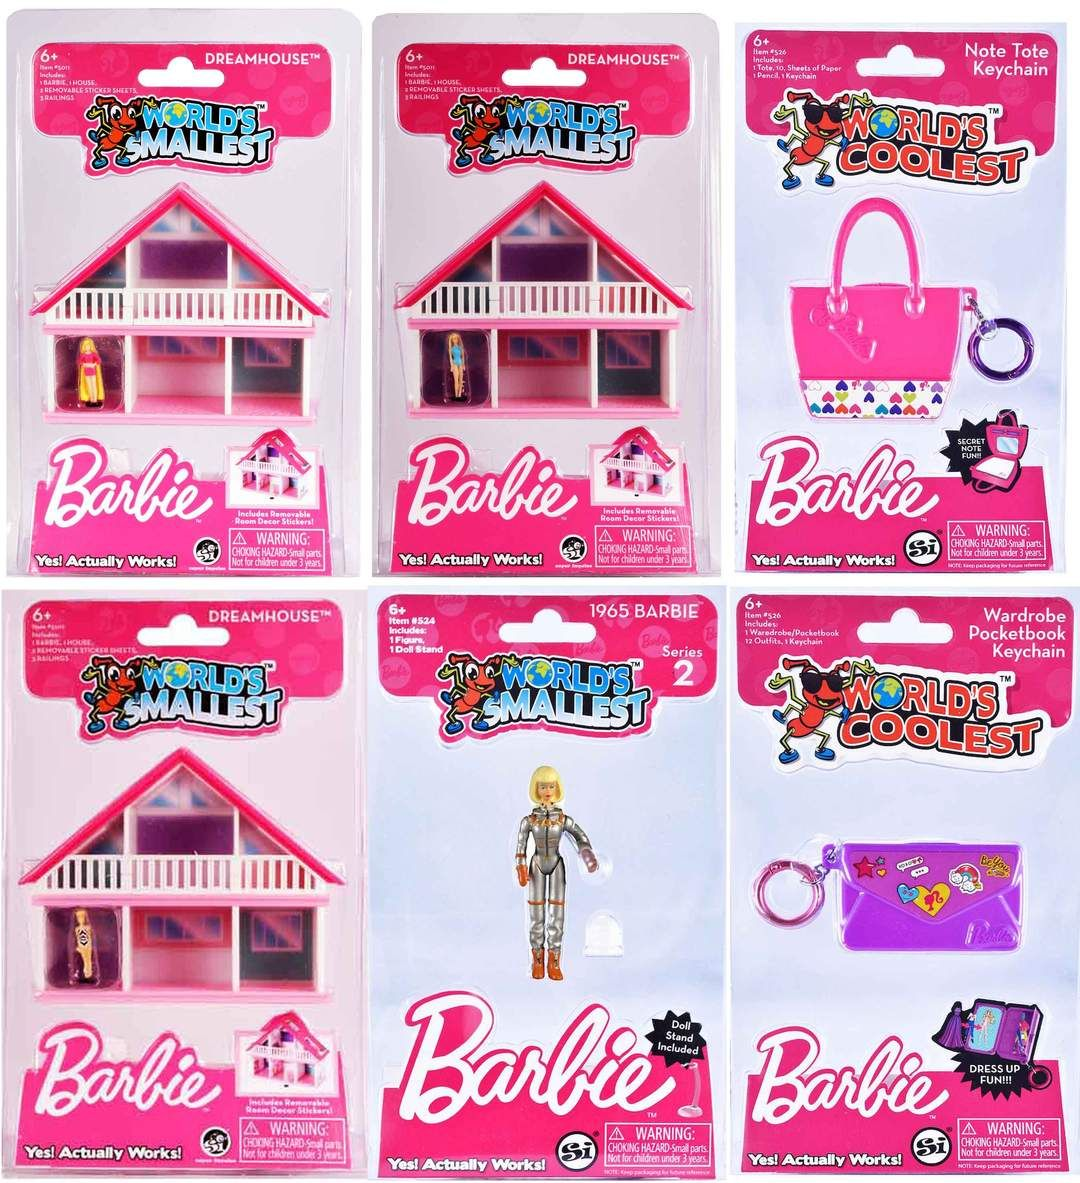 World/'s Smallest Barbie Dreamhouse and World/'s Smallest Barbie Series 2 Bundle